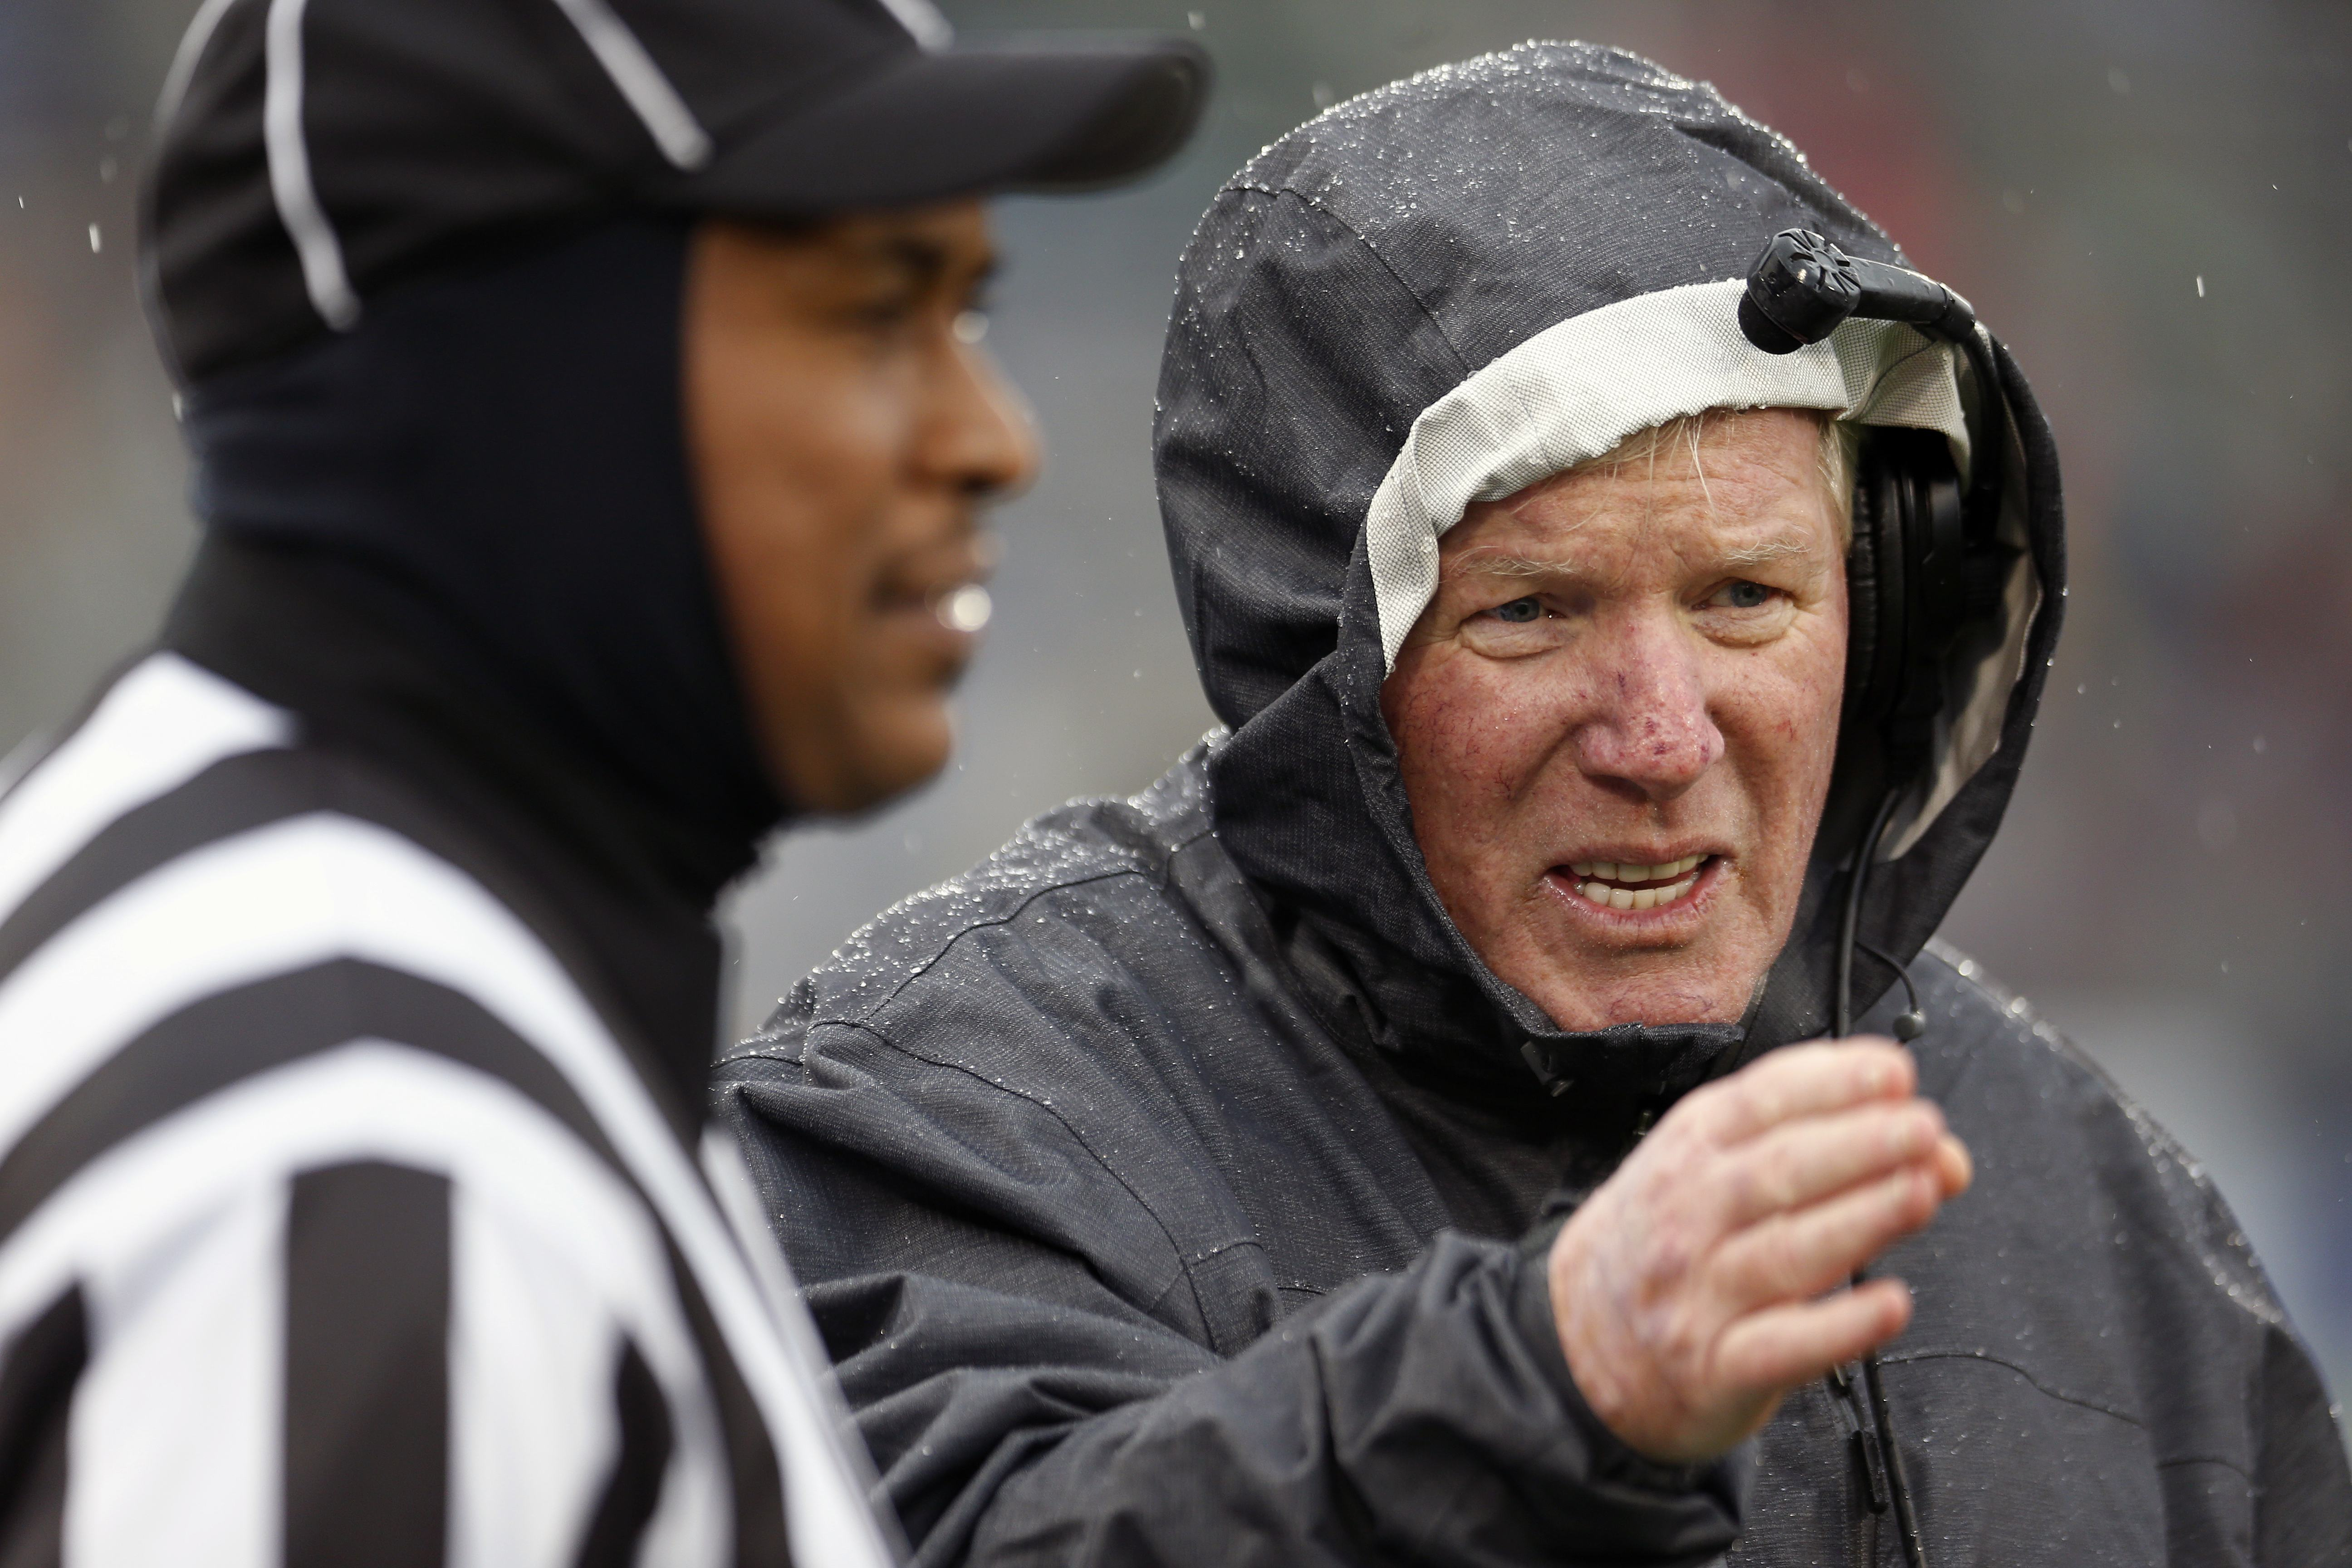 FILE - In this Nov. 1, 2014 file photo, Central Florida head coach George O'Leary, right, talks with an official in the first quarter of an NCAA college football game against Connecticut in East Hartford, Conn. UConn's football coach is looking forward to